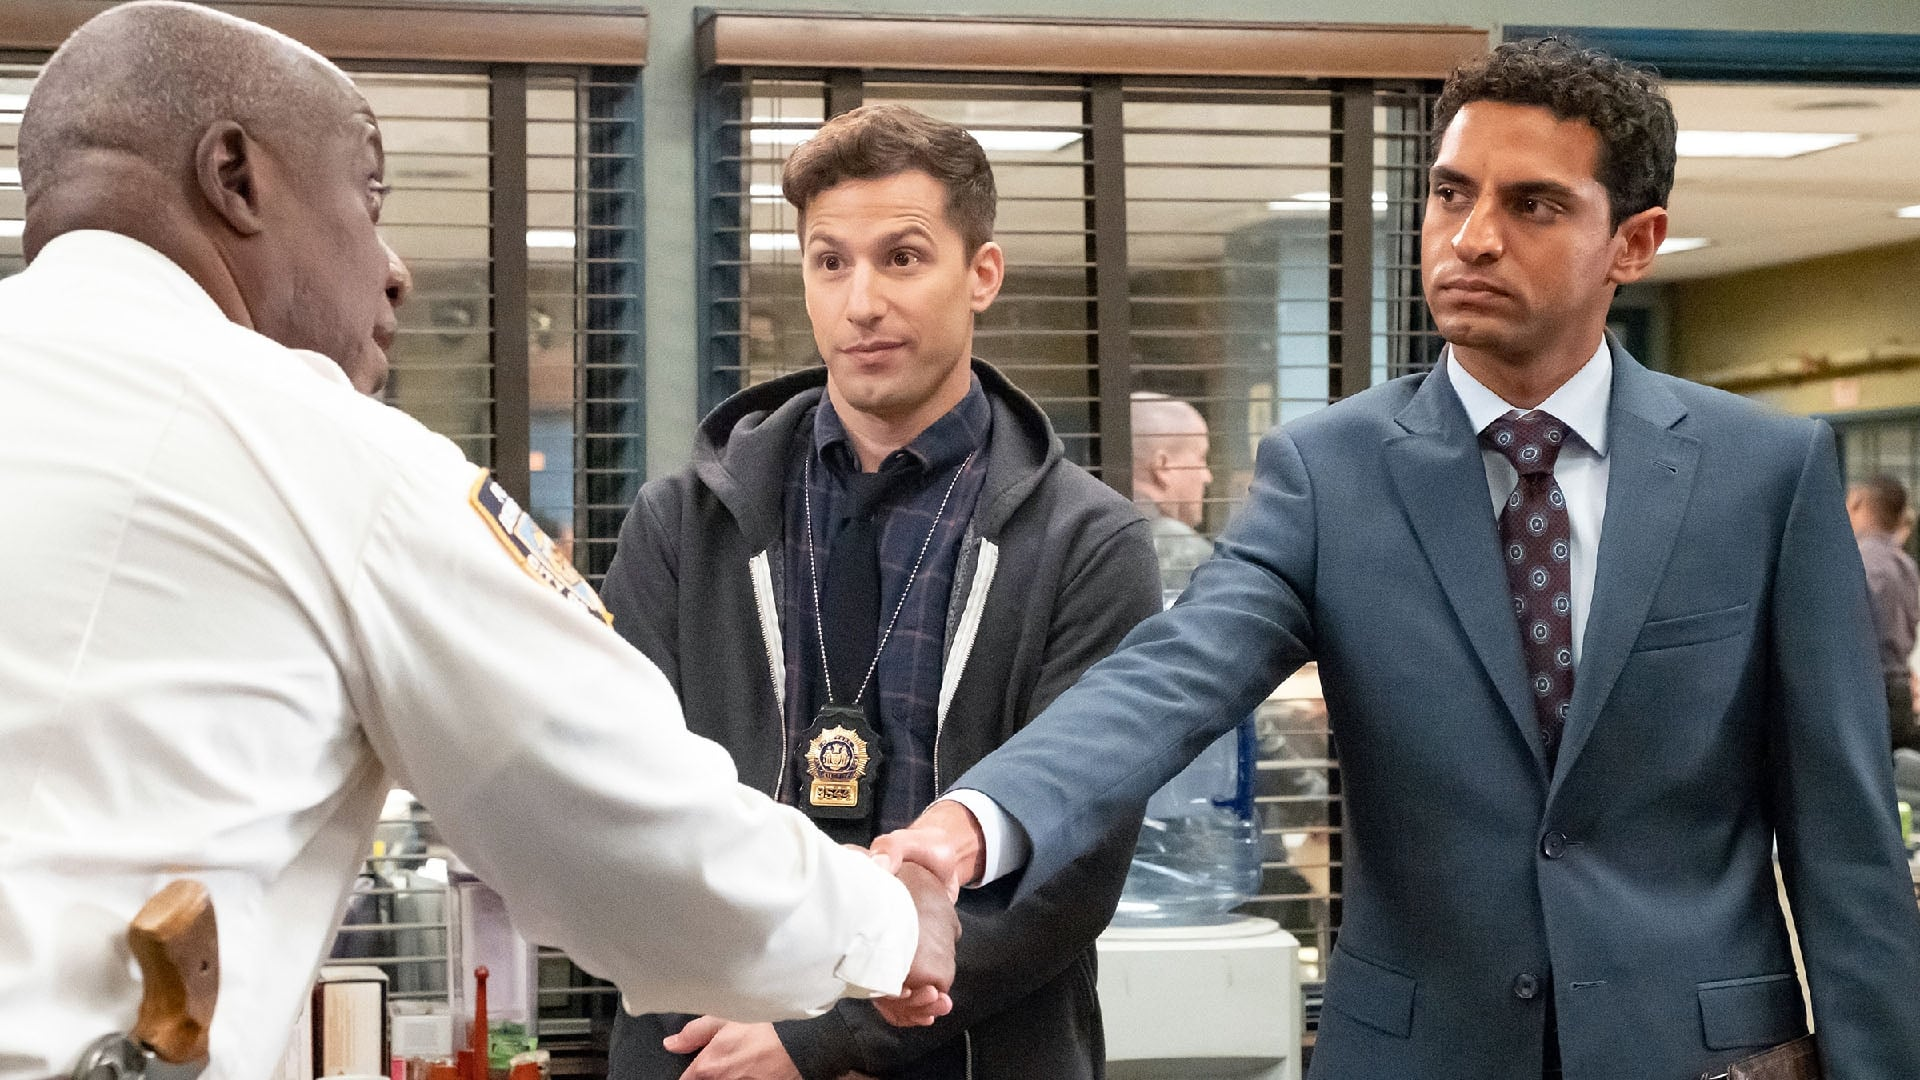 Brooklyn Nine-Nine - Season 6 Episode 7 : The Honeypot